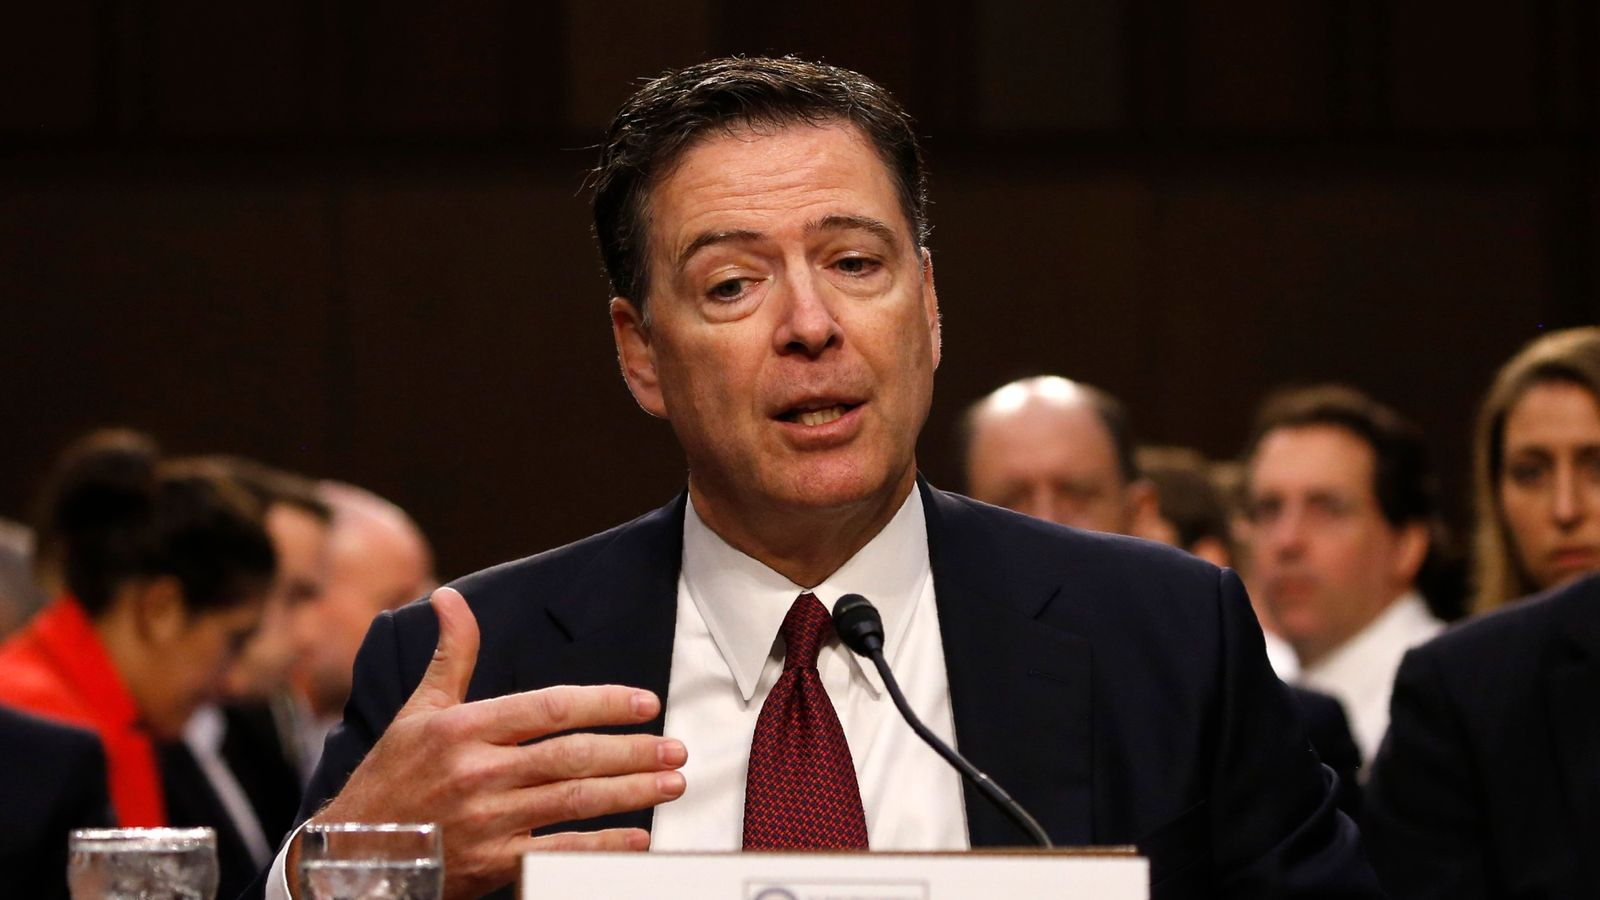 Former FBI Director James Comey testifies before a Senate Intelligence Committee hearing